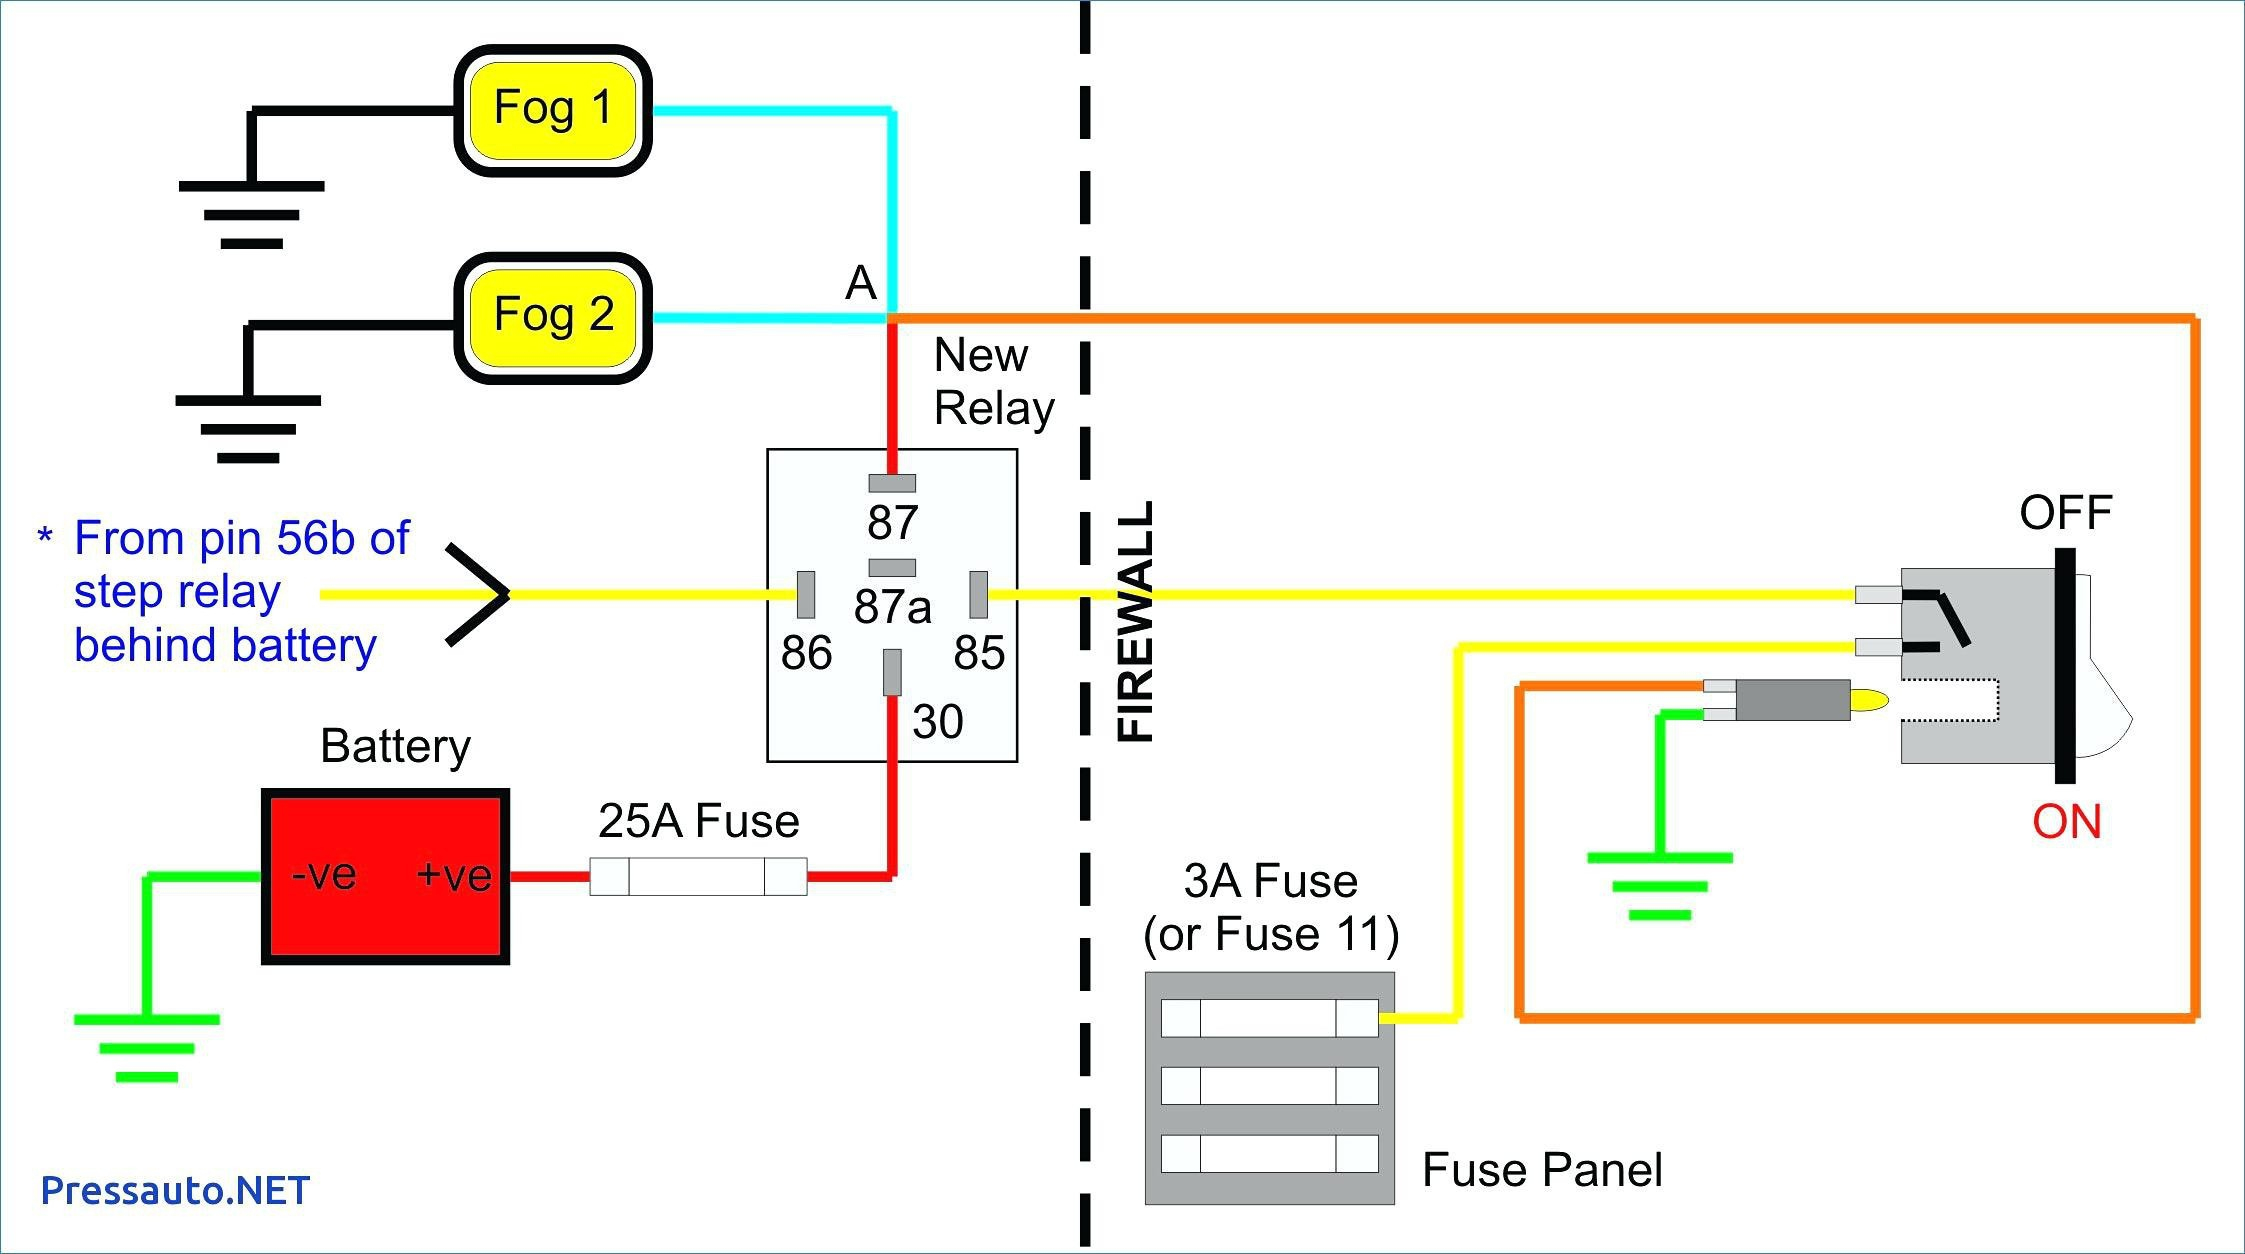 Fog Light Wiring Diagram - Wiring Diagram Data - Fog Light Wiring Diagram